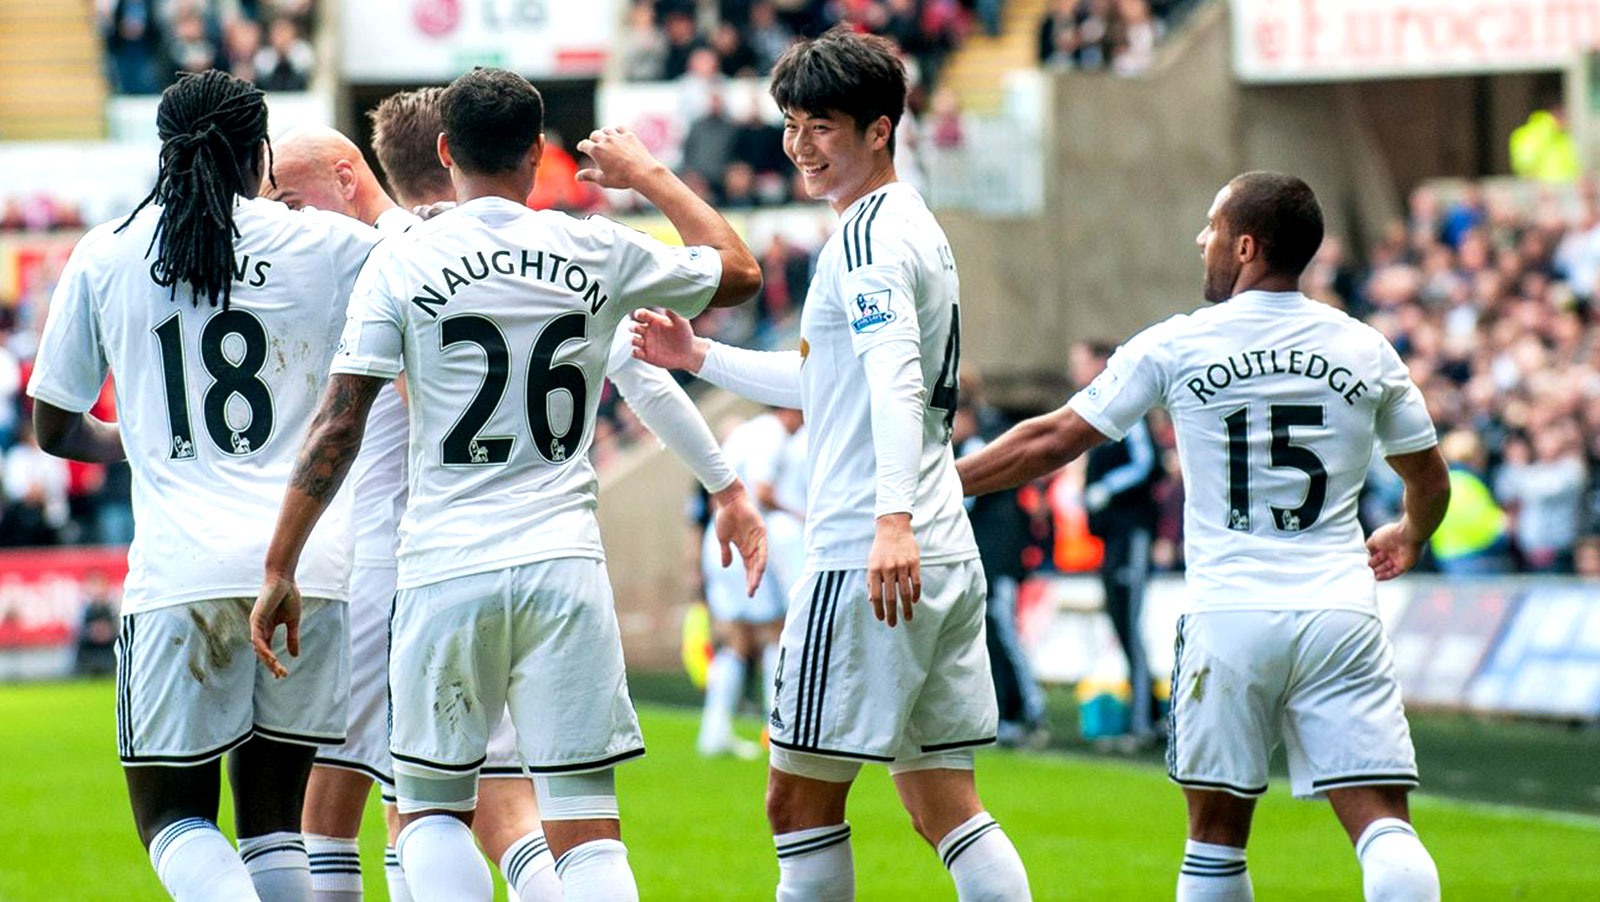 EPL Review Week 29: Swansea move above West Ham; time up for Pardew?